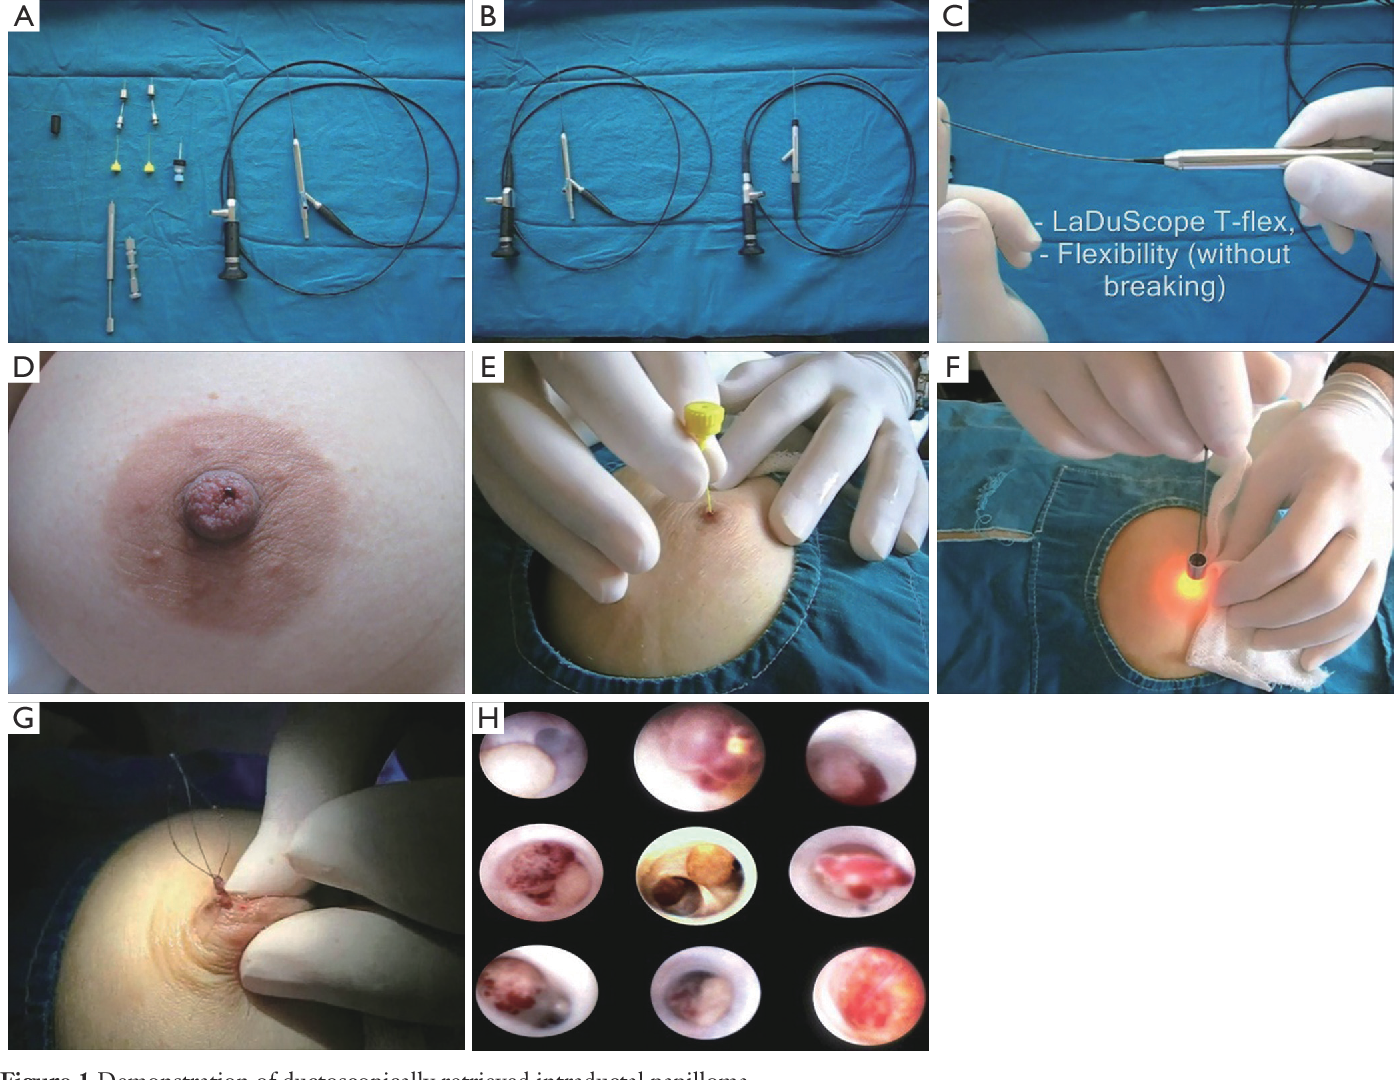 intraductal papilloma surgical excision)